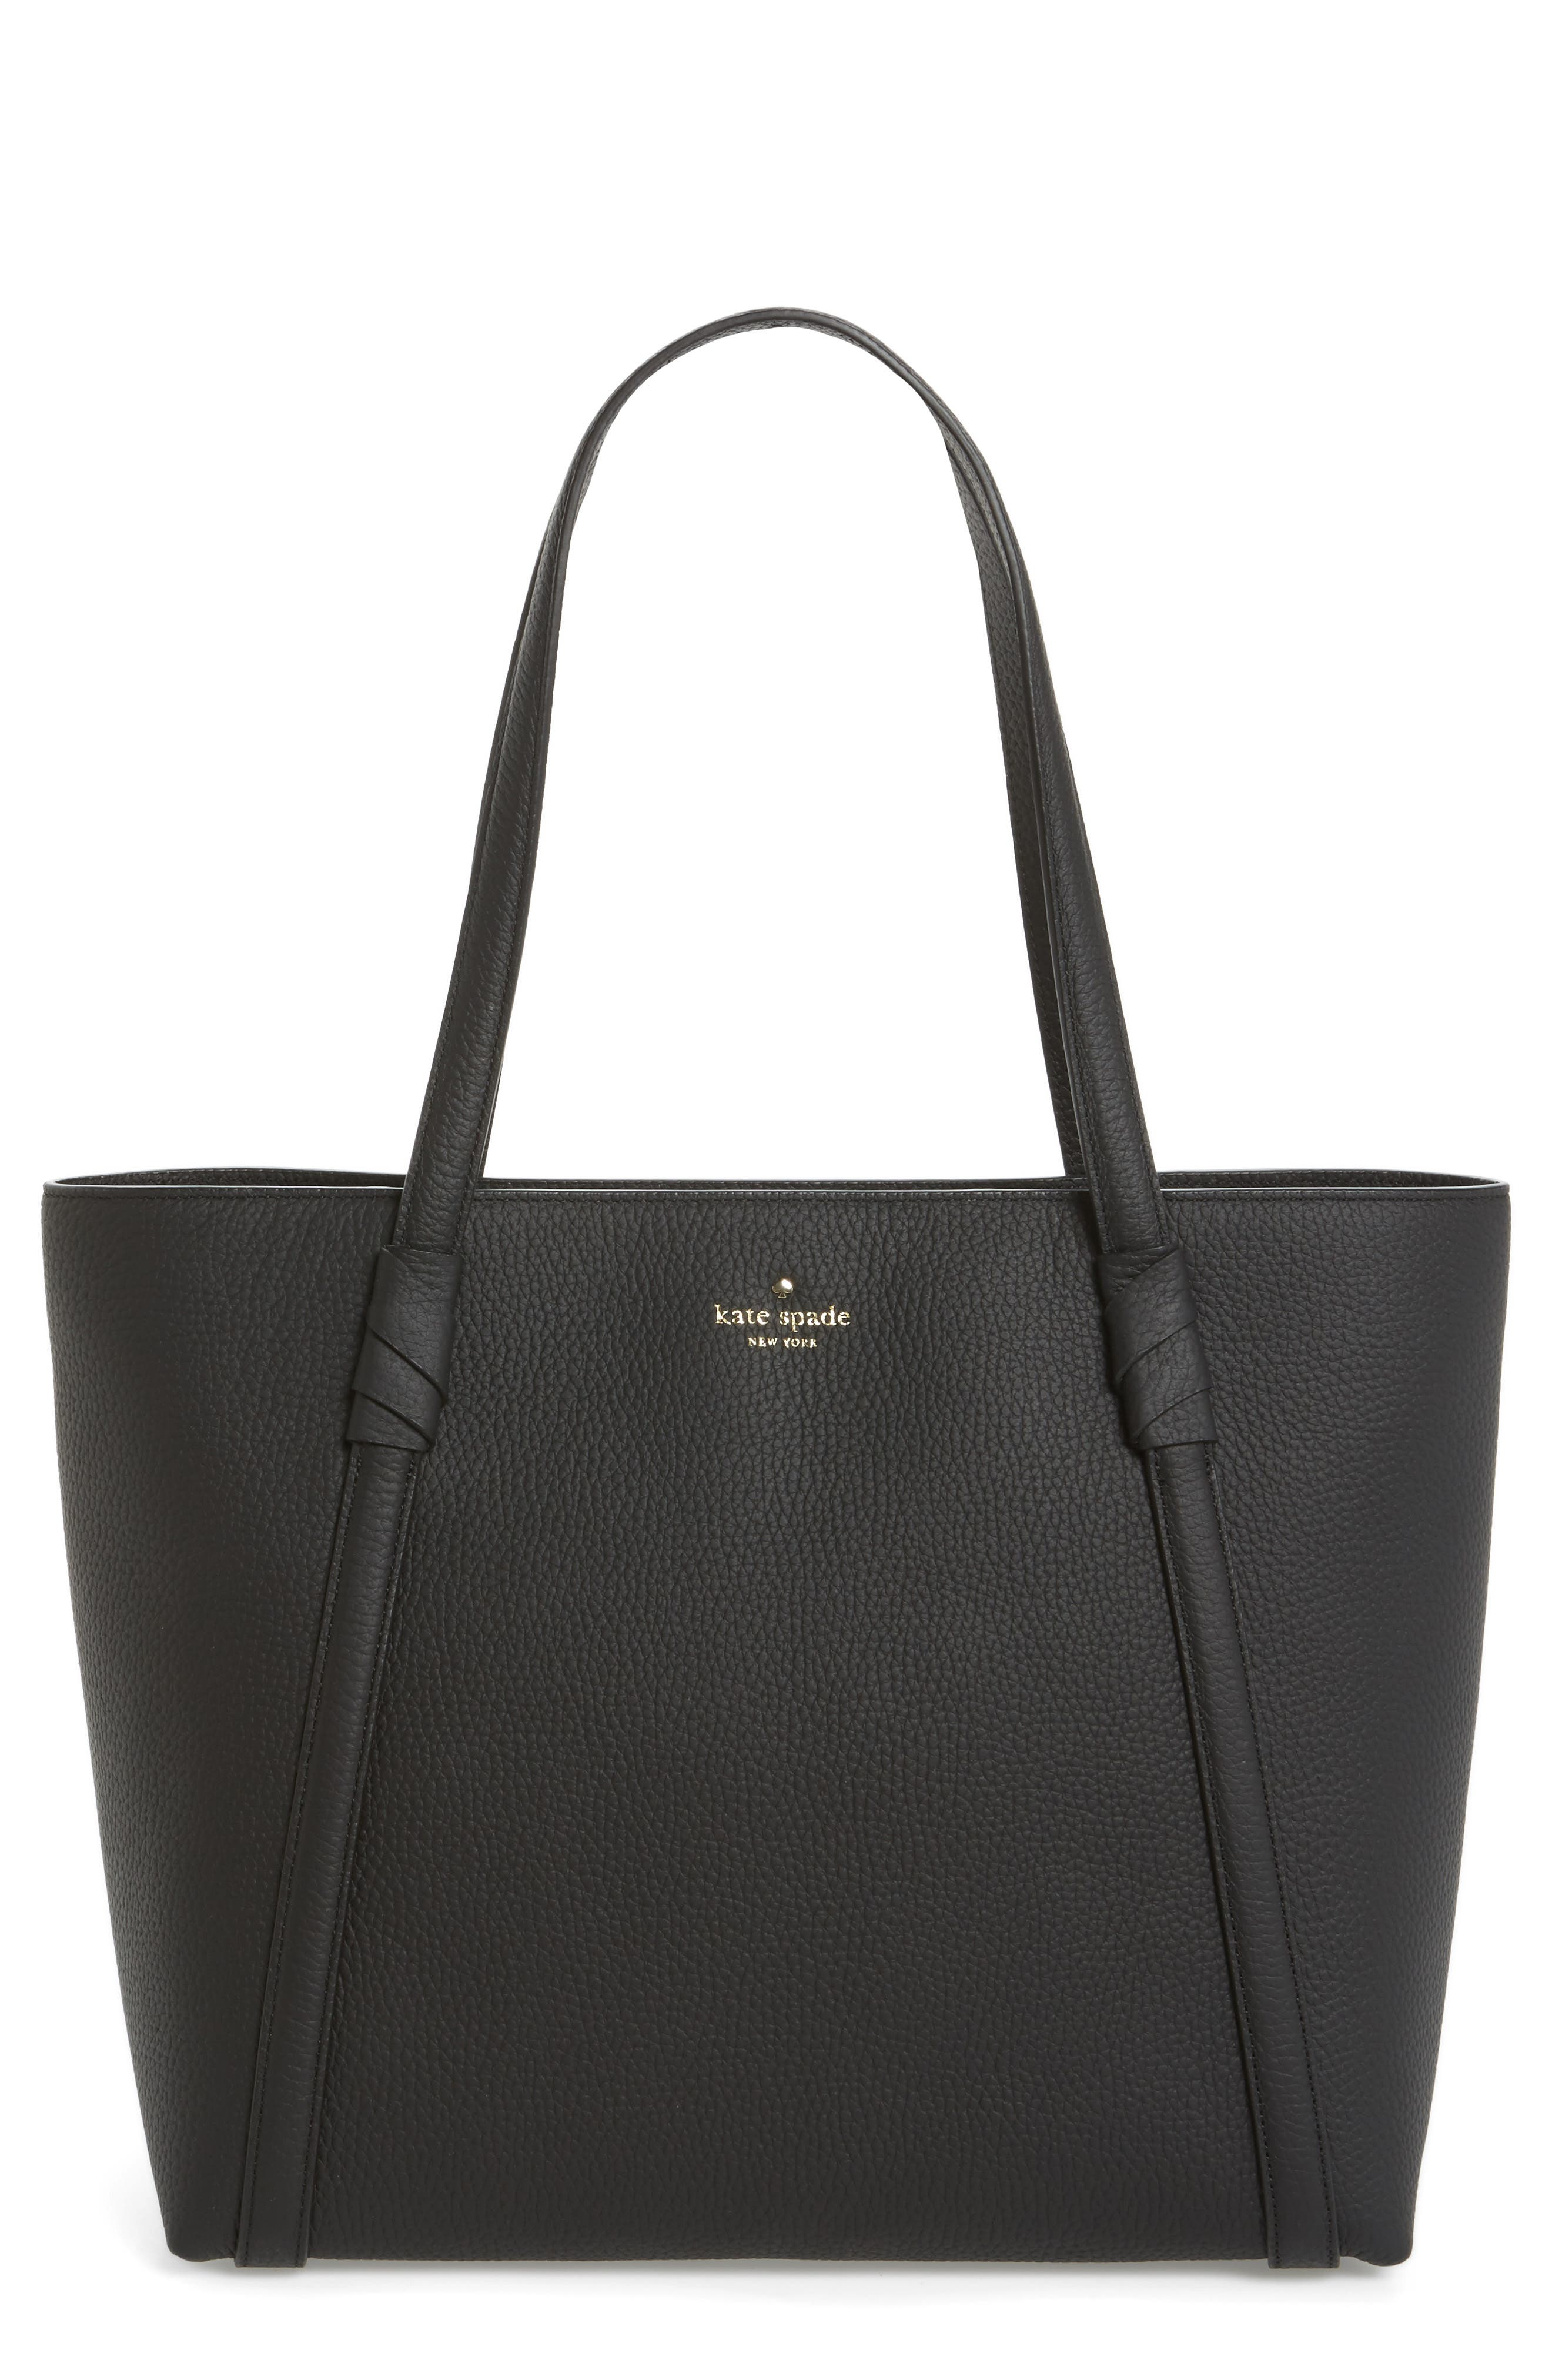 daniels drive - cherie leather tote,                             Main thumbnail 1, color,                             001